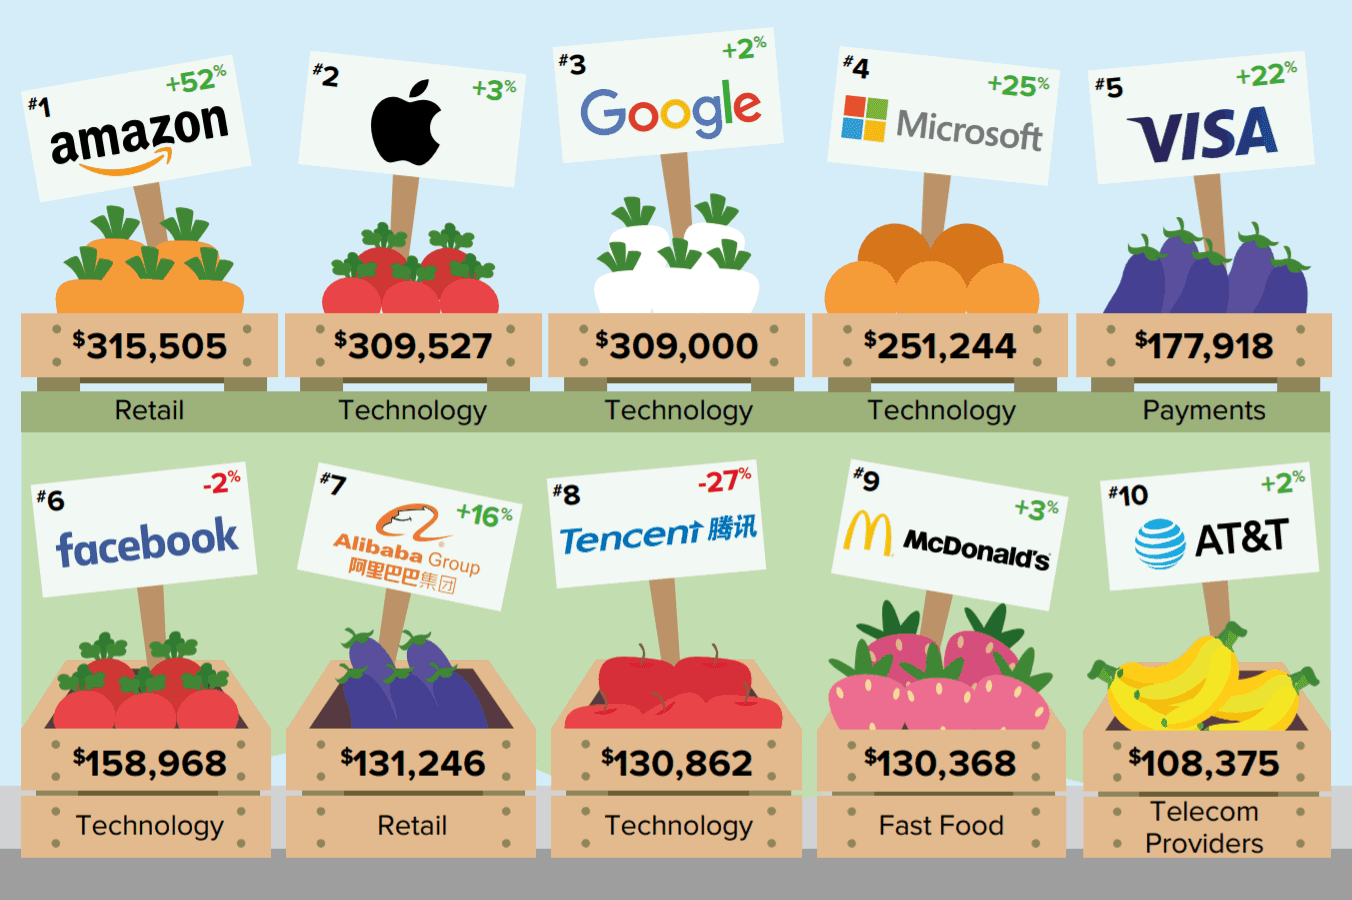 Amazon beats Apple and Google to become the world's most valuable brand in 2019